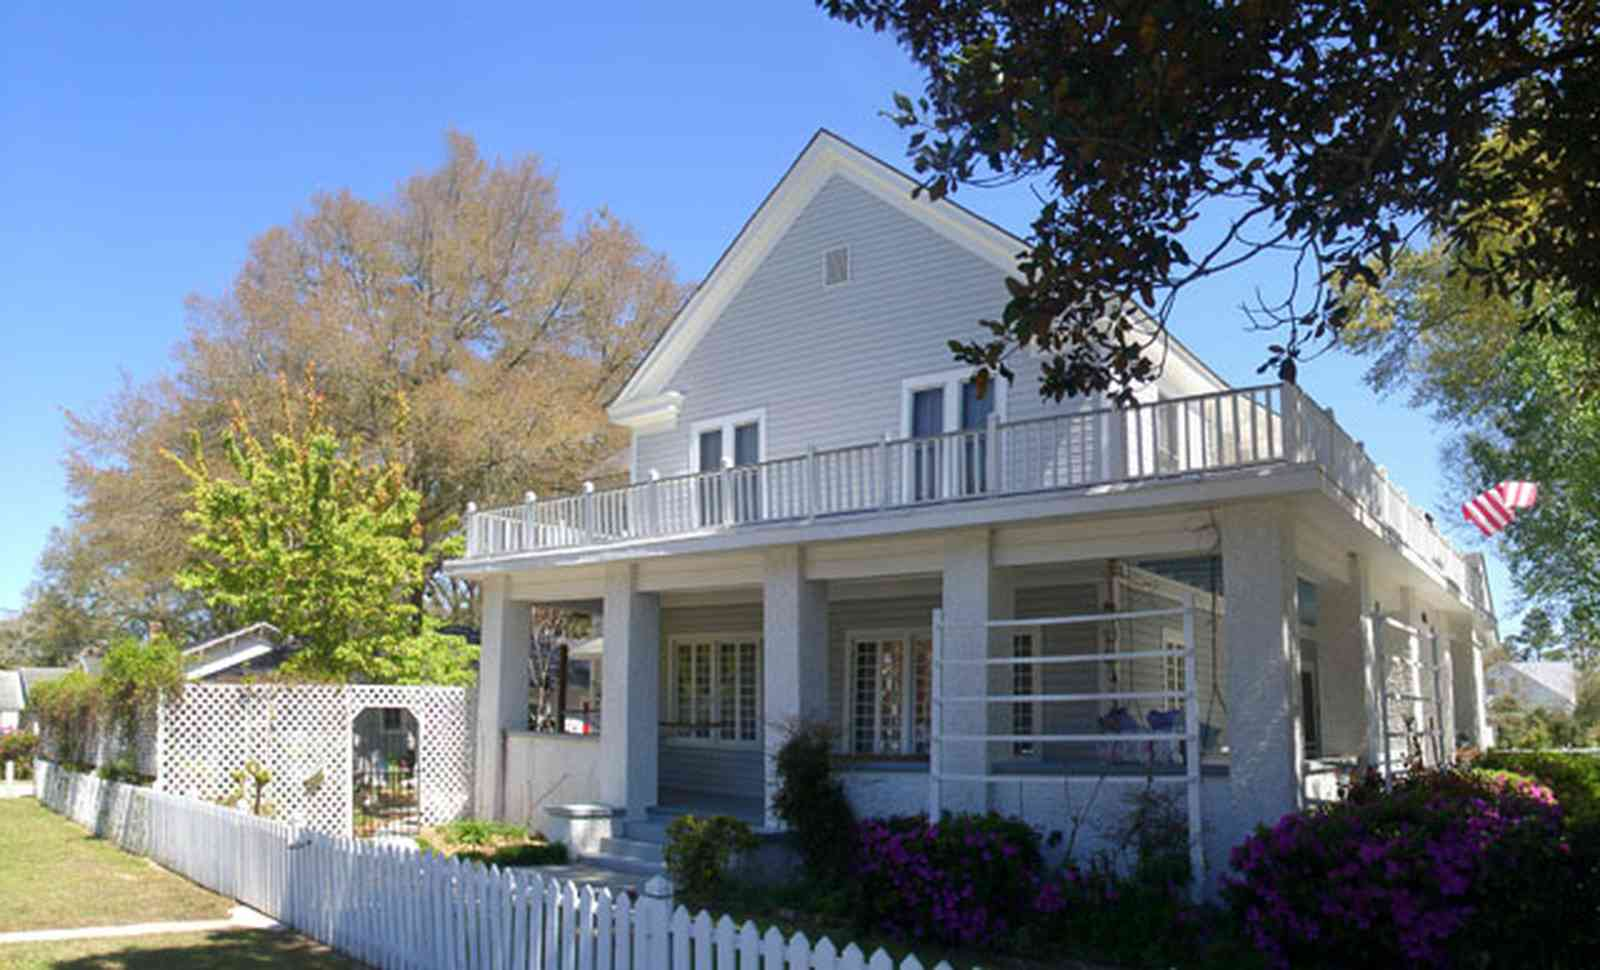 Milton:-Historic-District:-301-Pine-Street:-Butler-Potter-Schlenker-House_05.jpg:  wrap-around porch, arbor, azalea bushes, victorian home